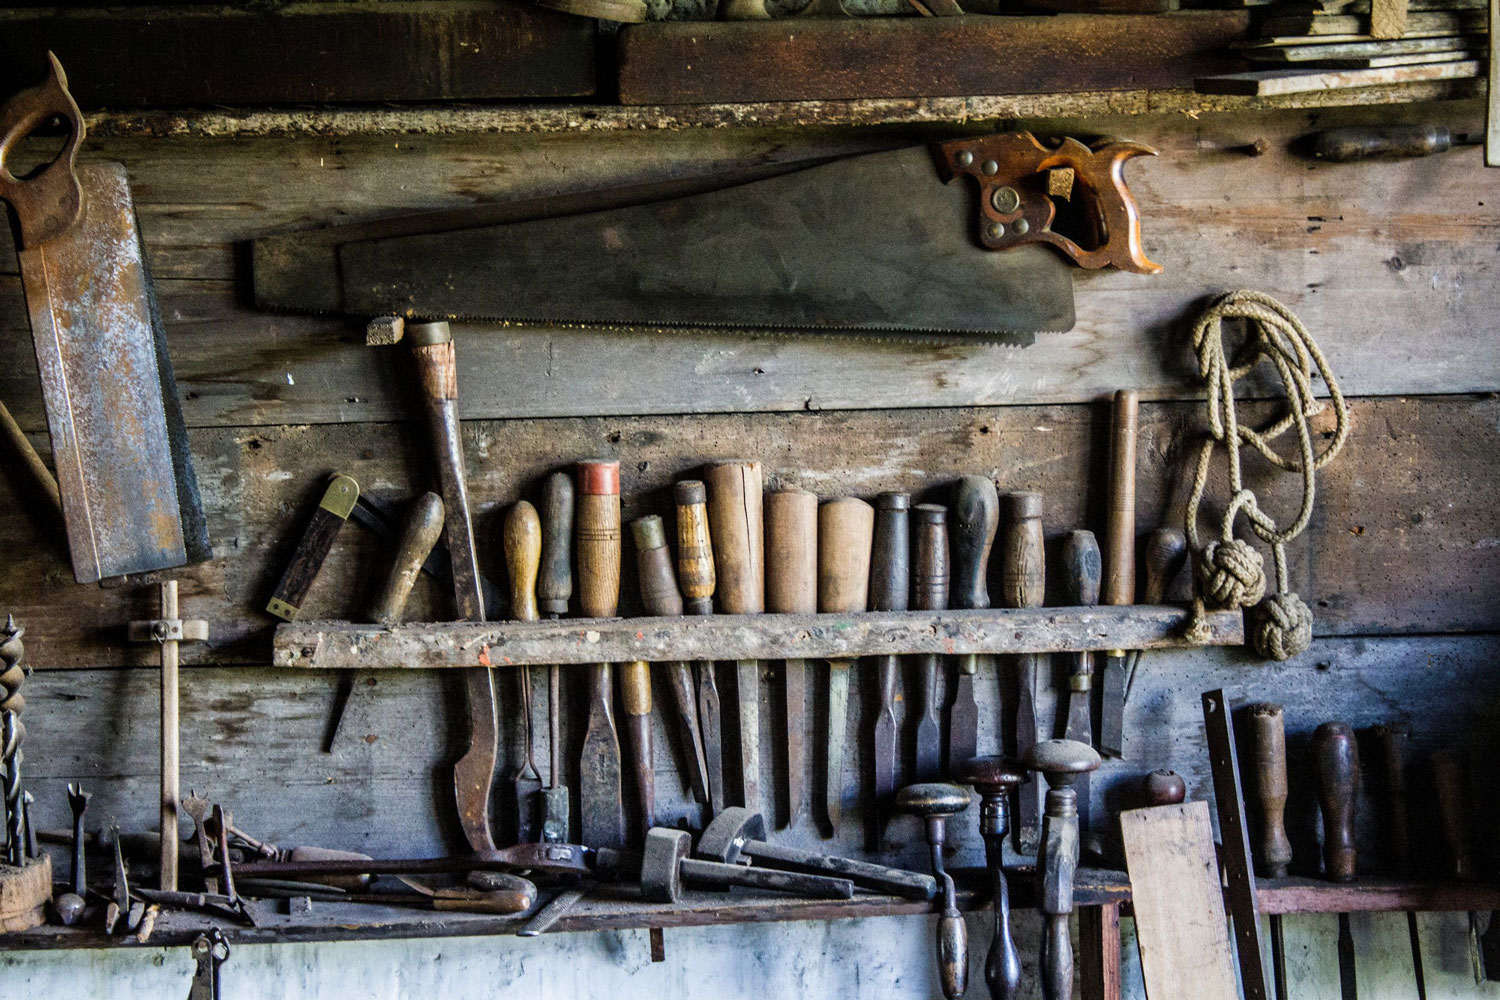 An assortment of well used tools